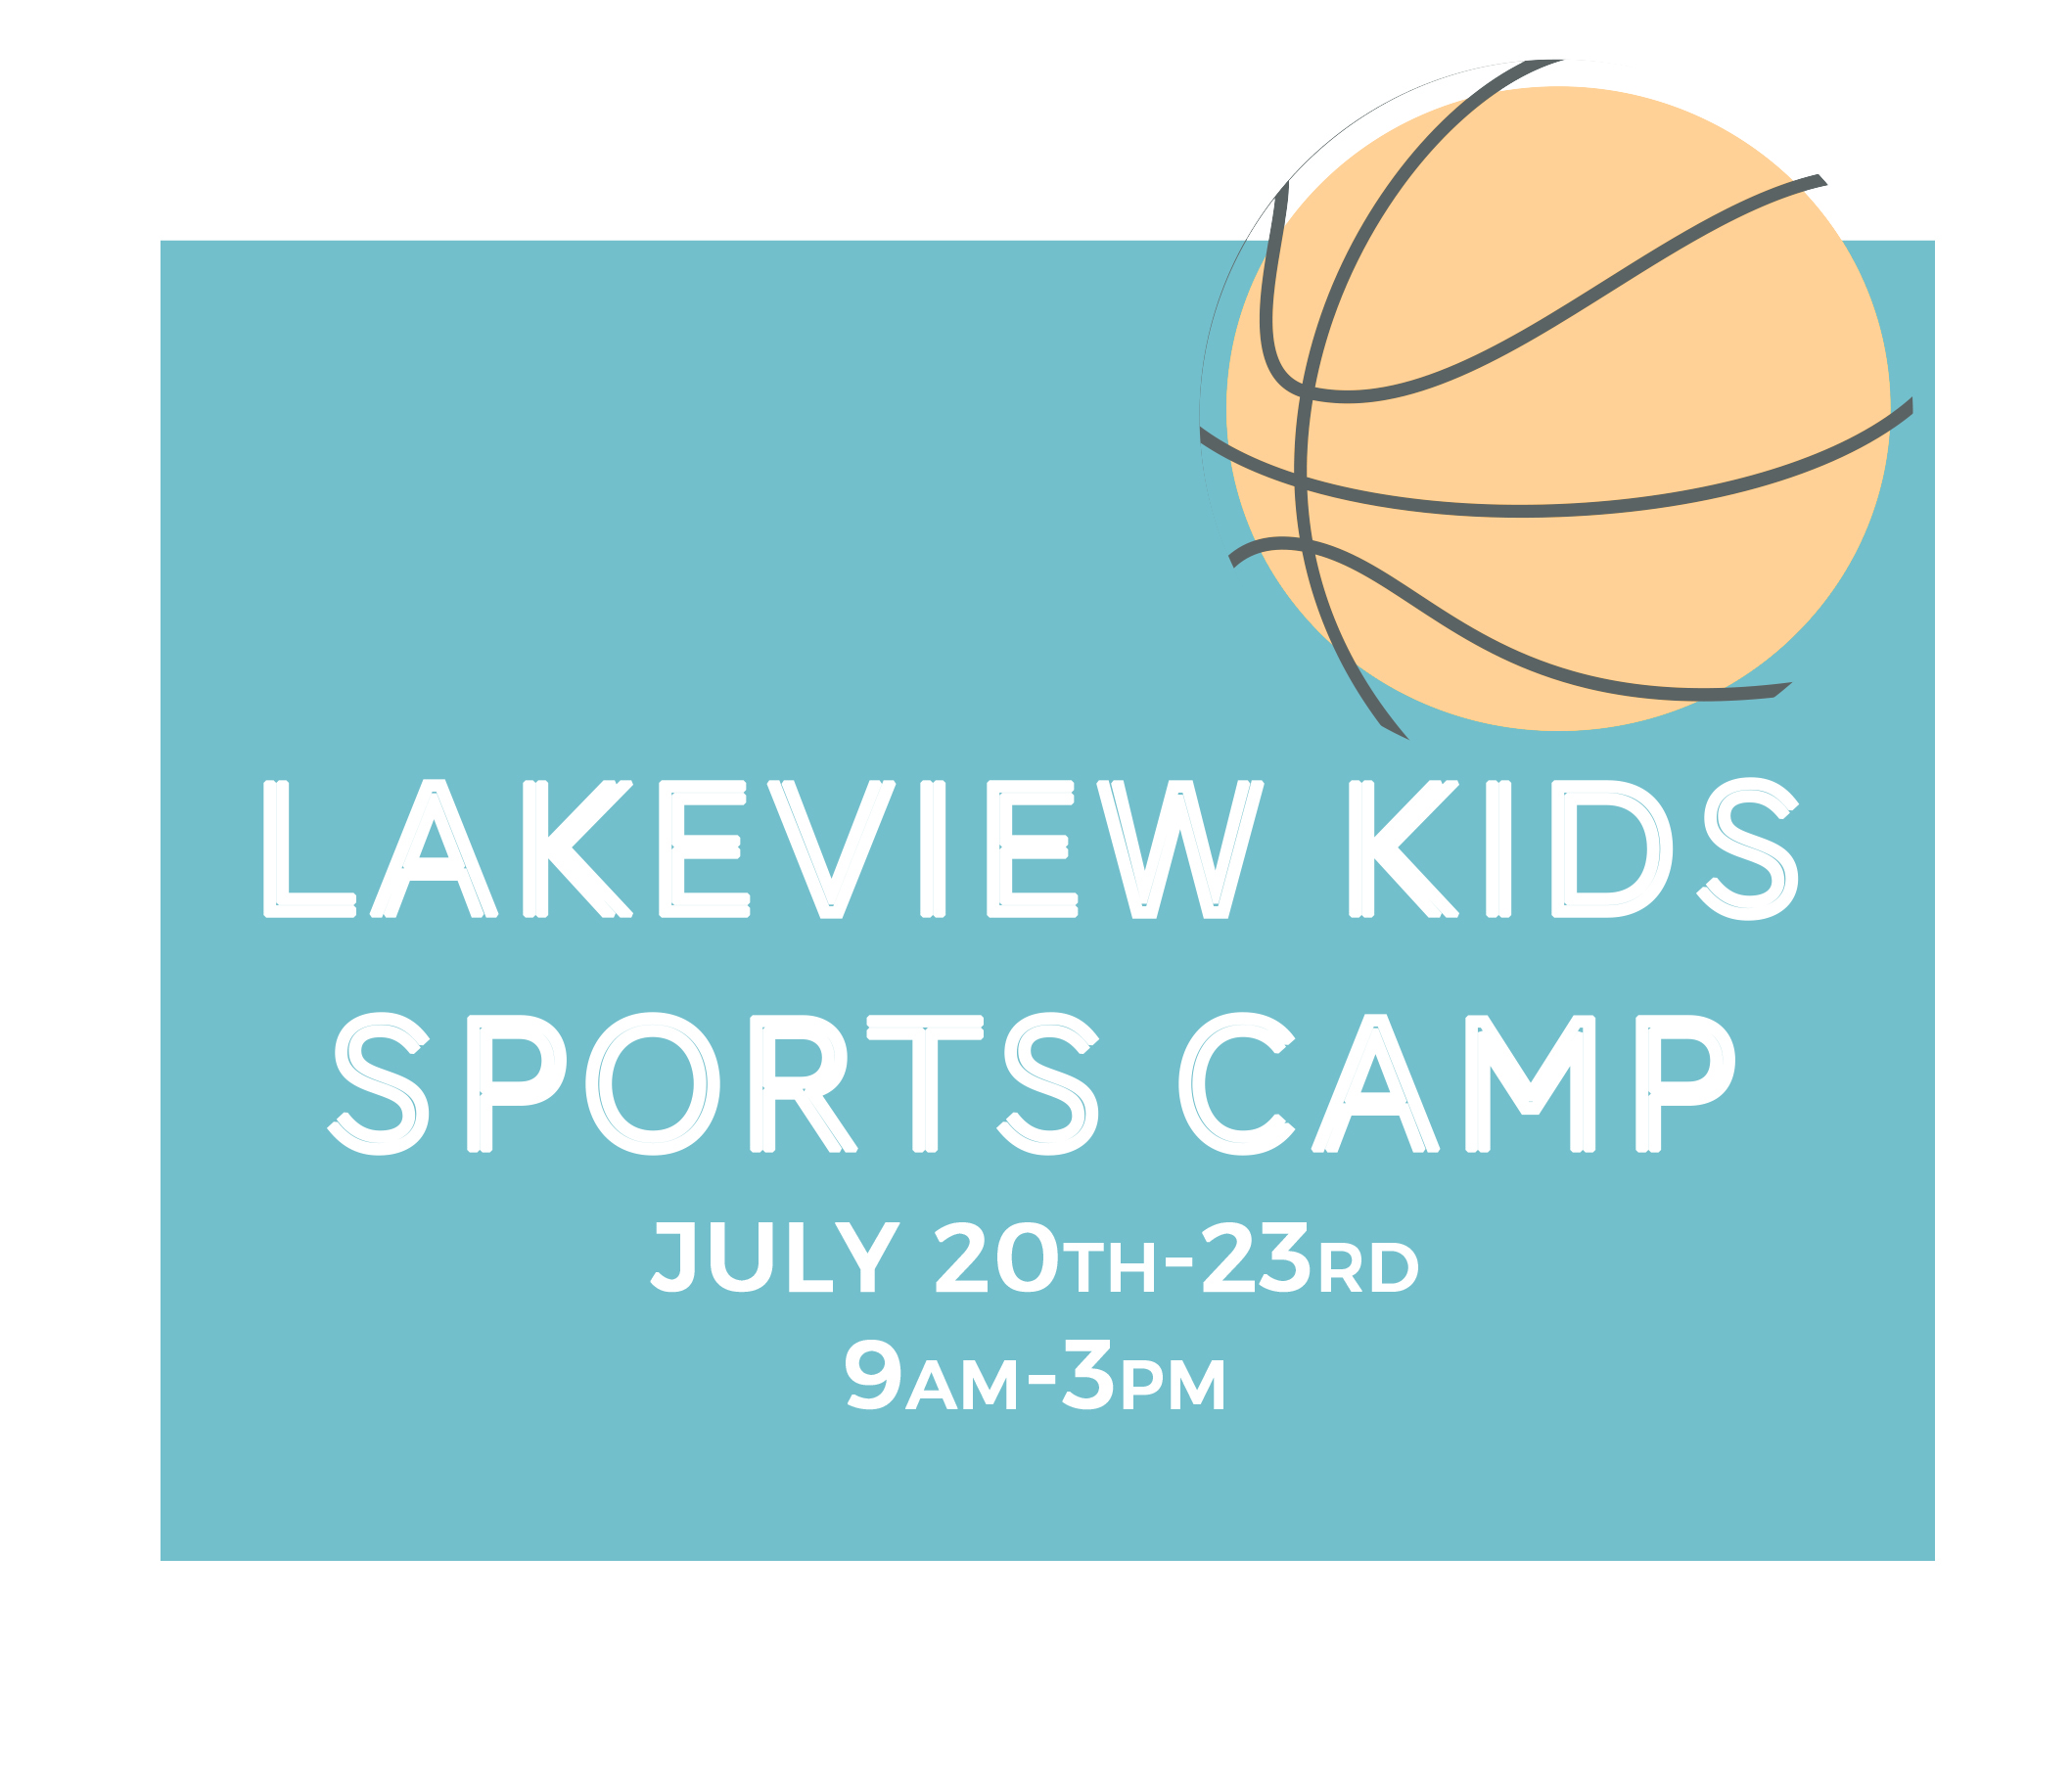 Lakeview Kids Sports Camp